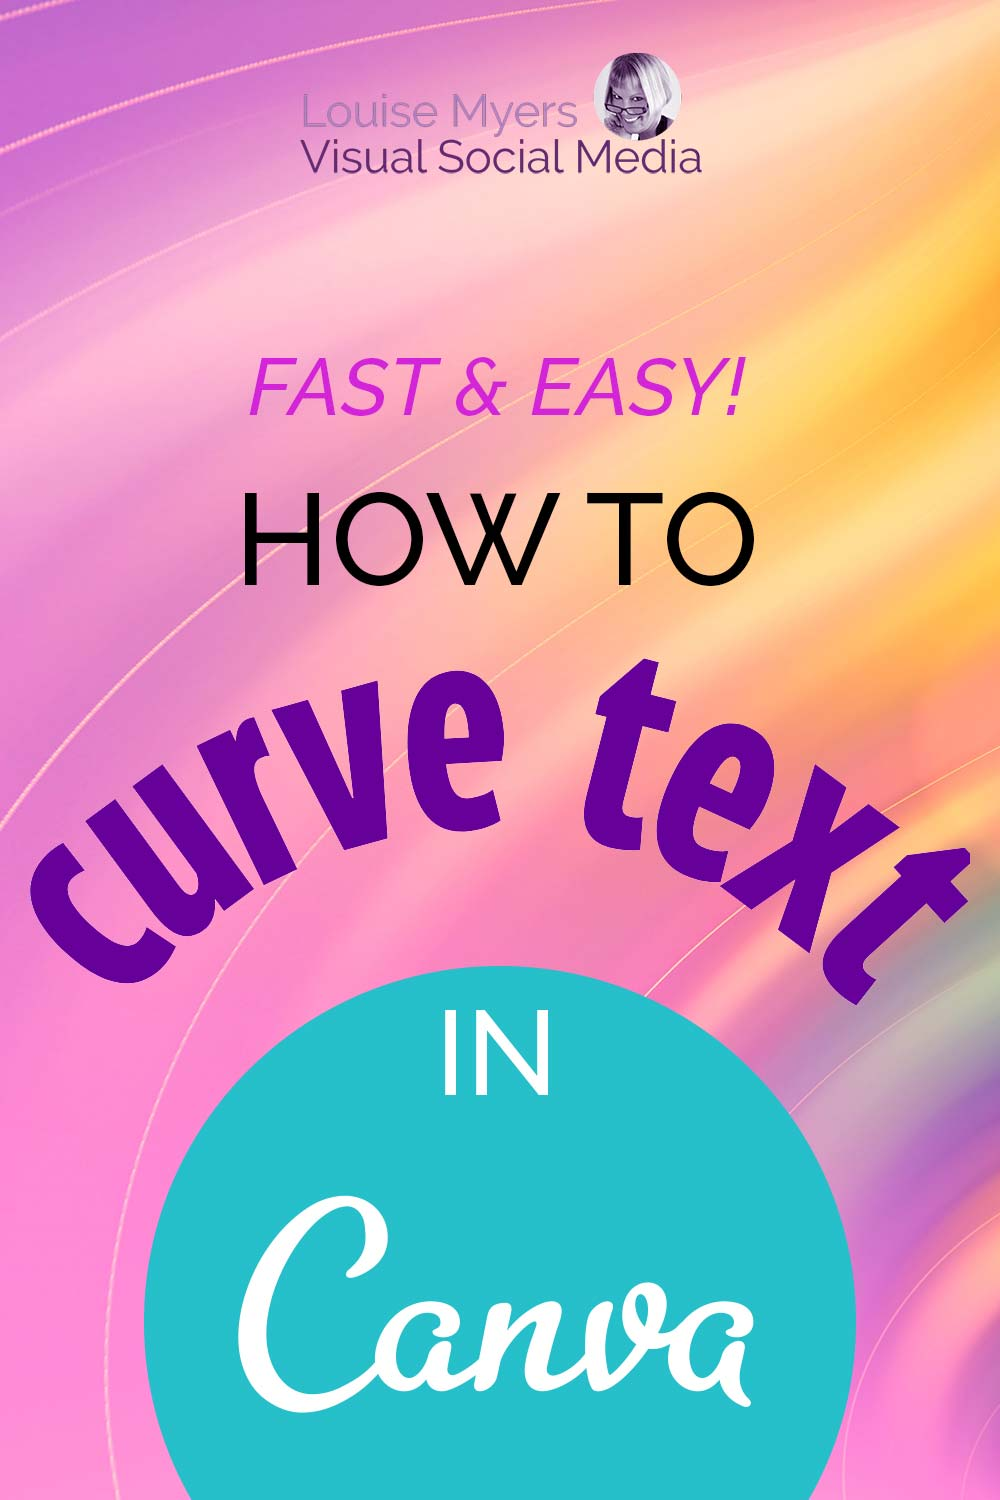 words how to curve text in canva over curvy pastel background with logo.